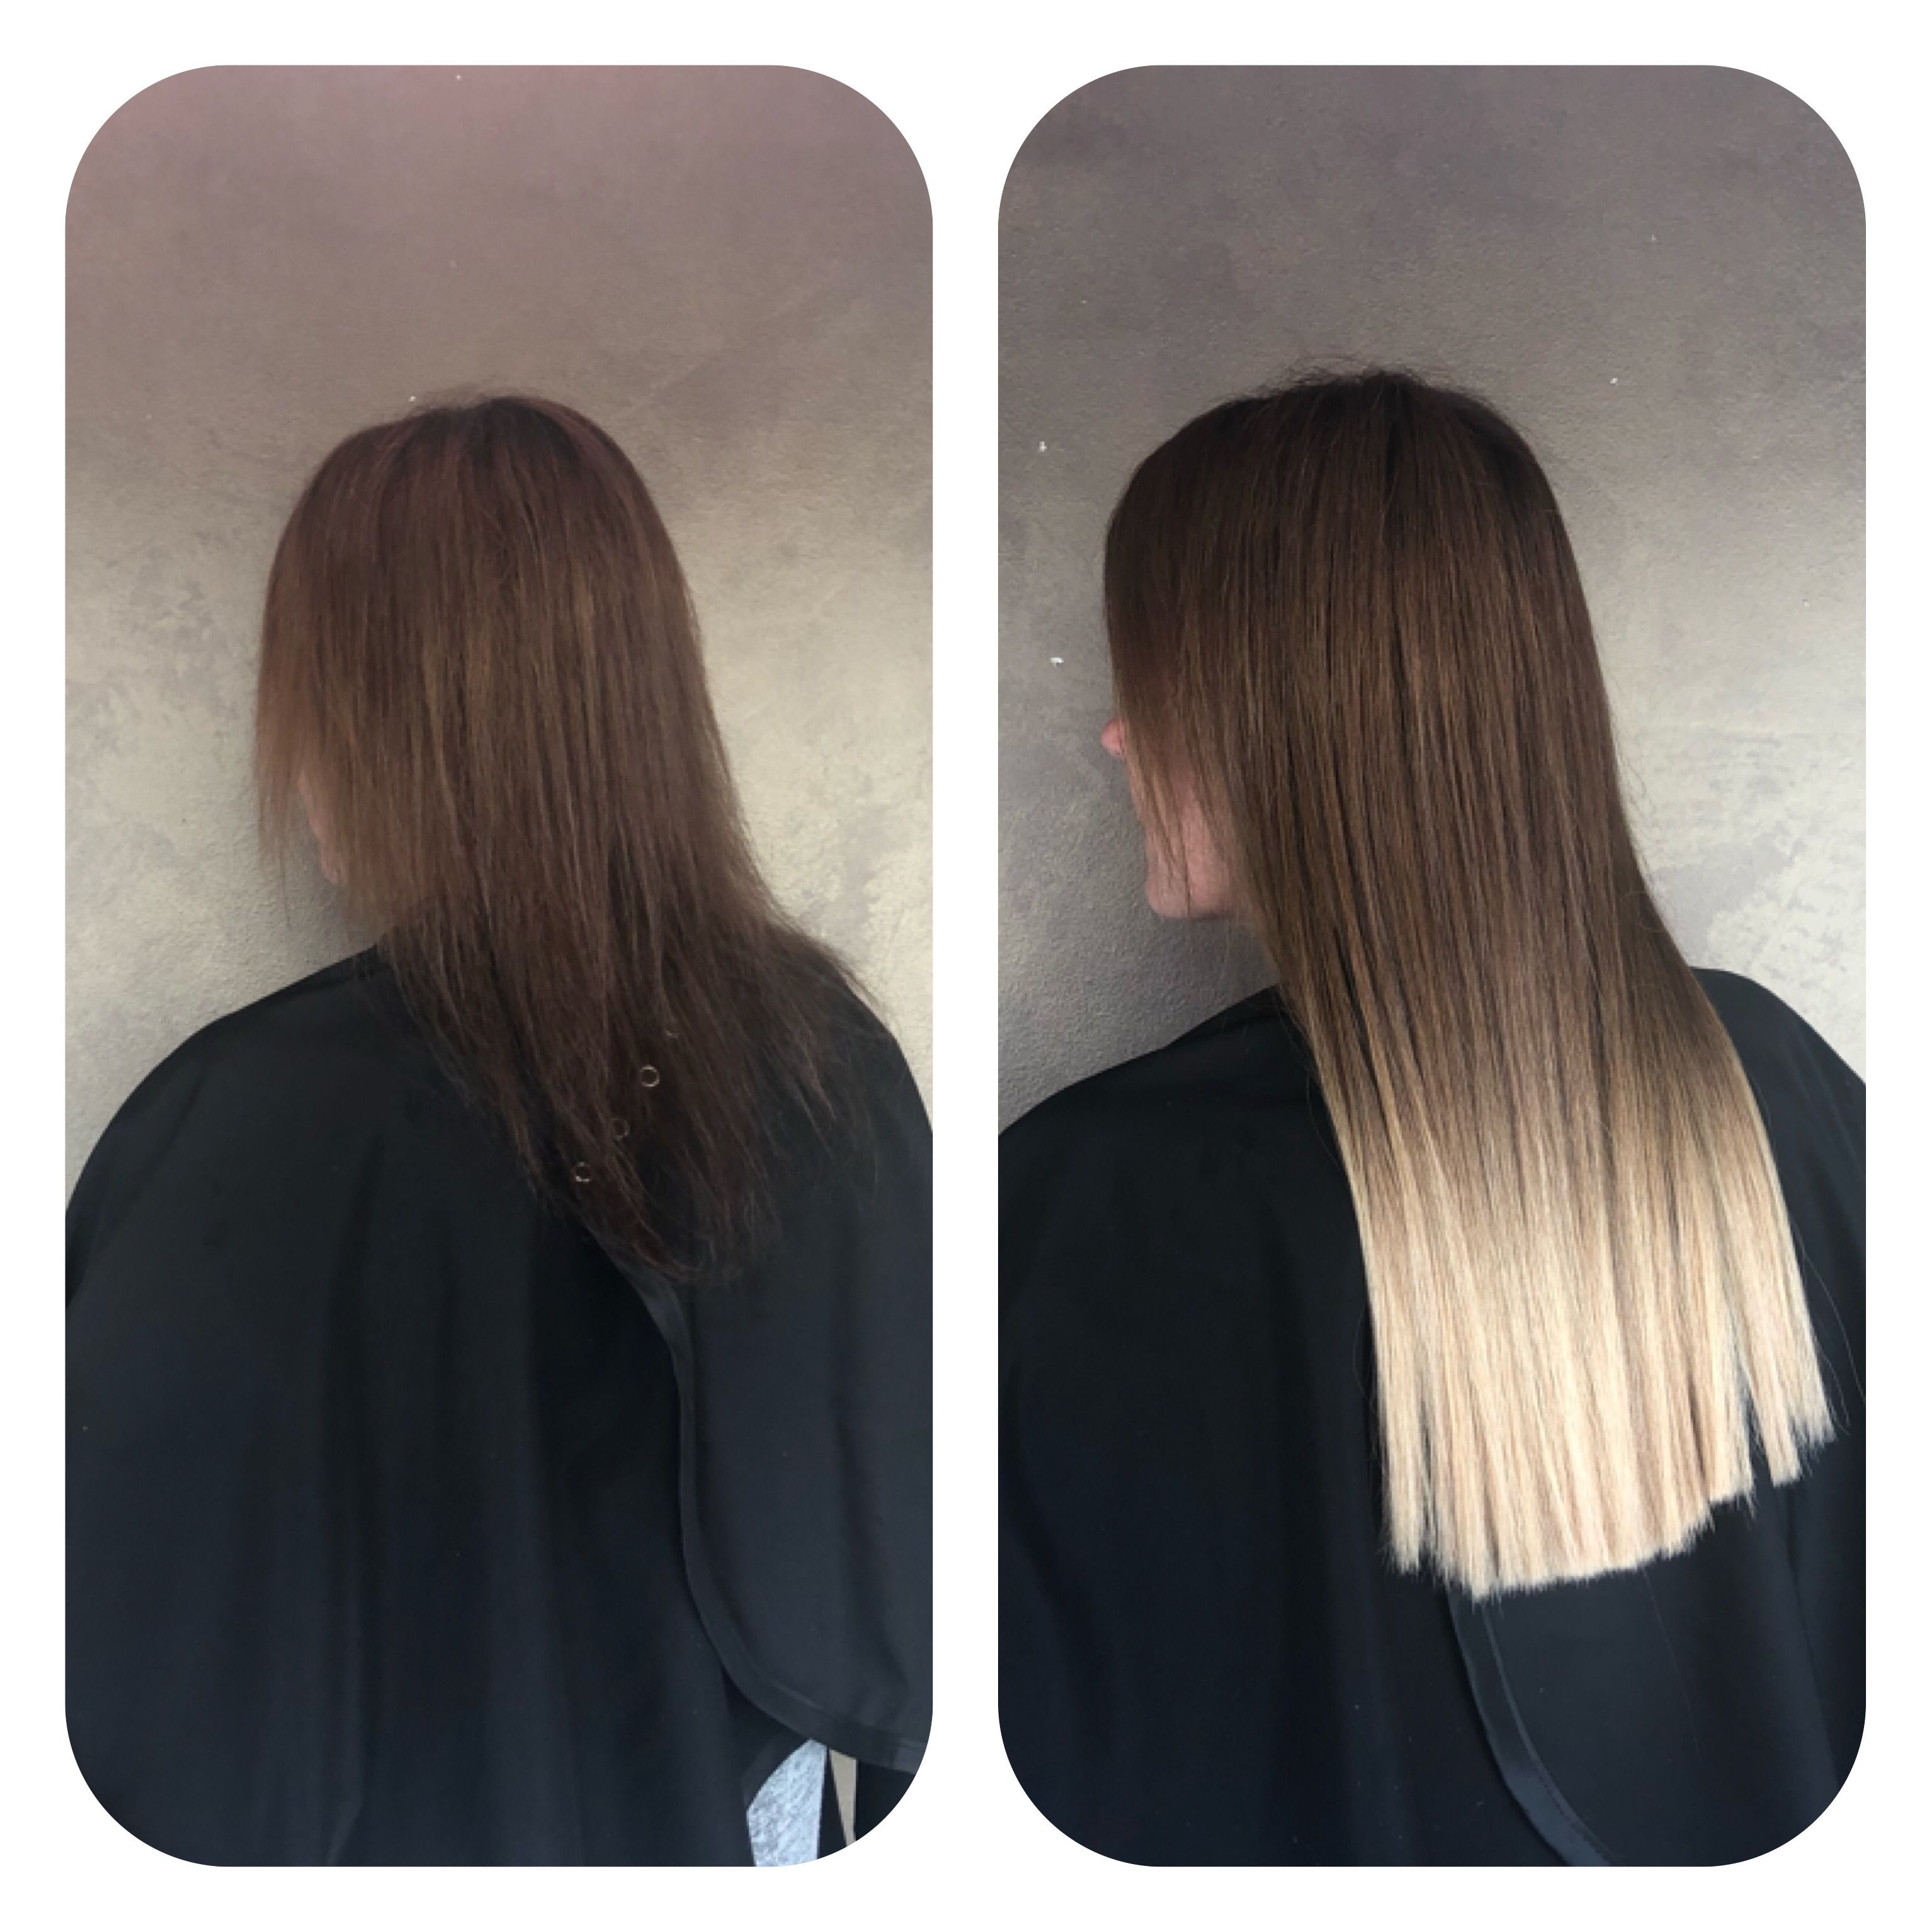 How Much Is It To Get Hair Extensions Done Professionally